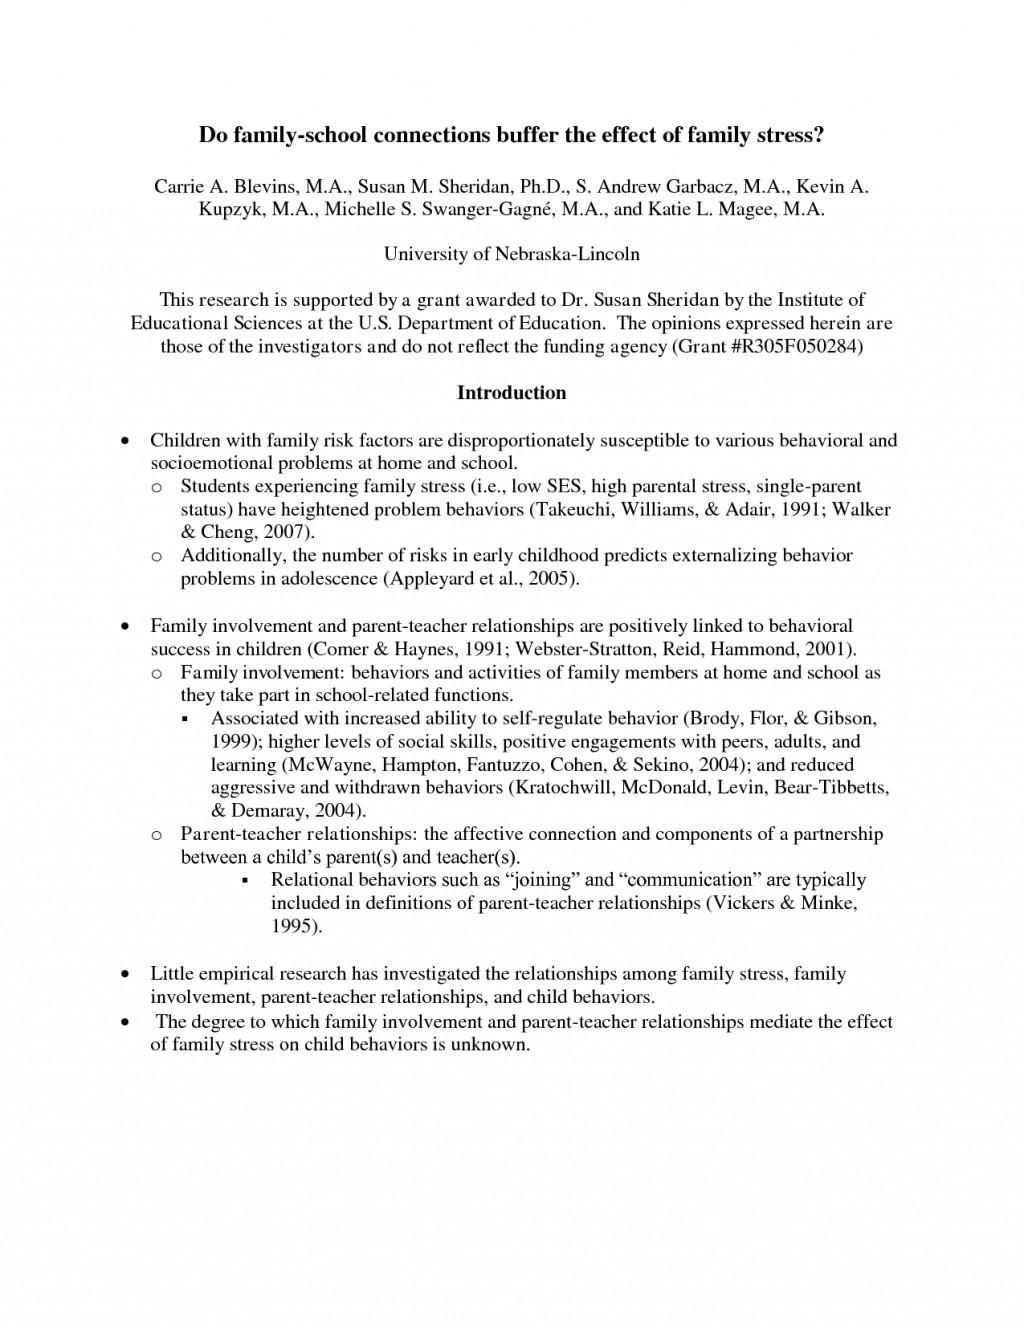 017 Liberty University Research Paper Frightening Outline Large